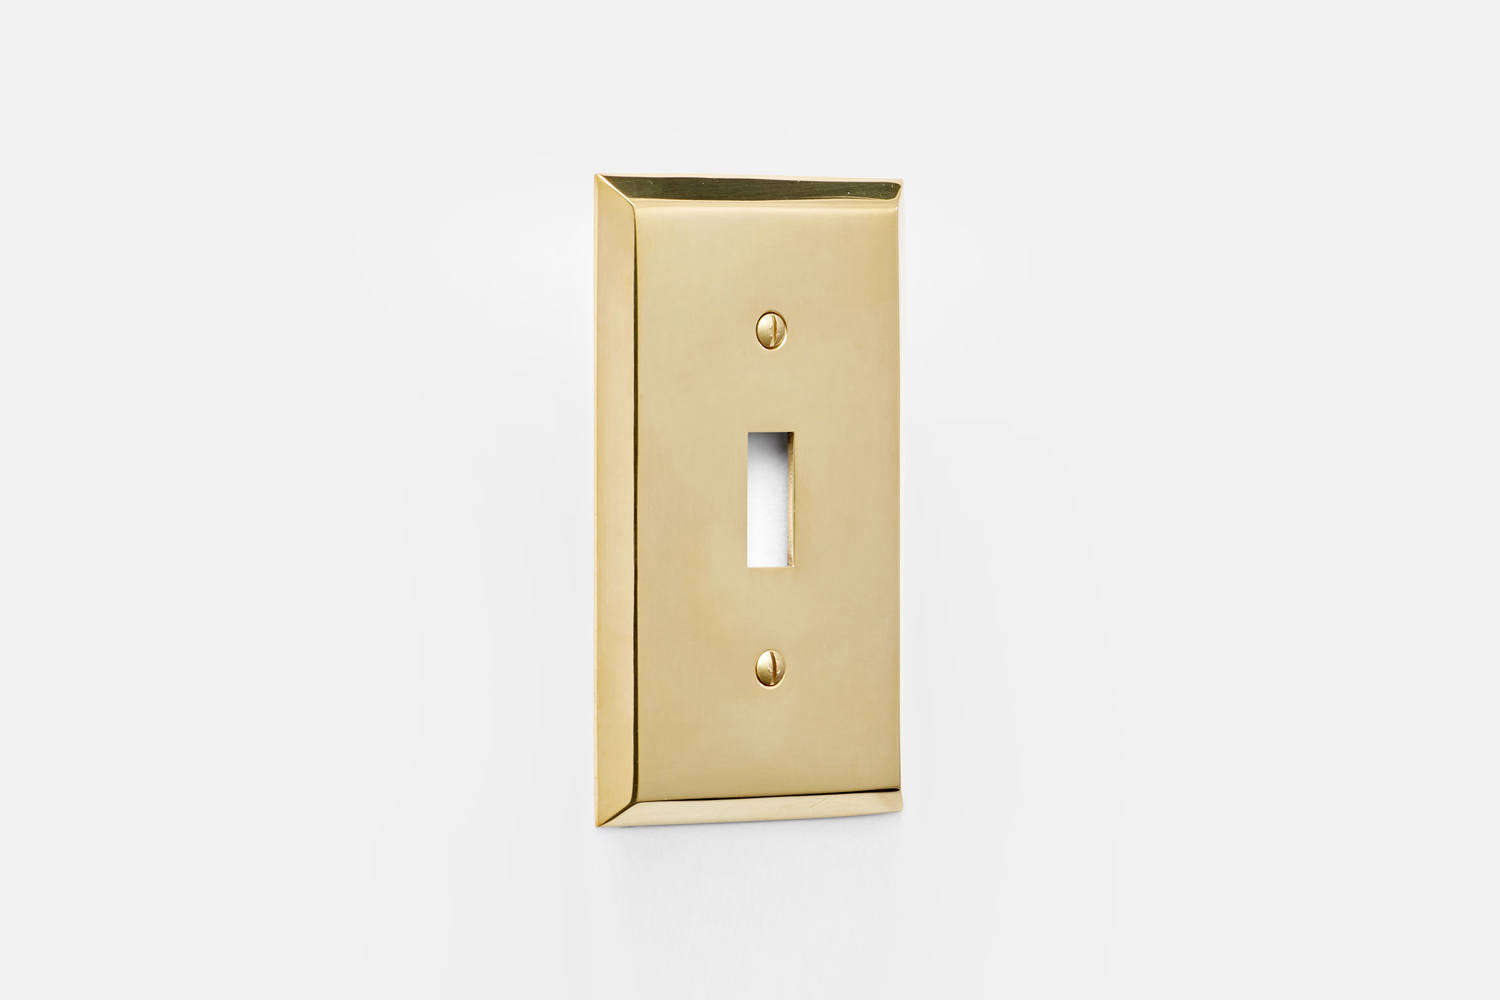 From Rejuvenation, the Lewis Single Toggle Switchplate, shown in Unlacquered Brass, is $.